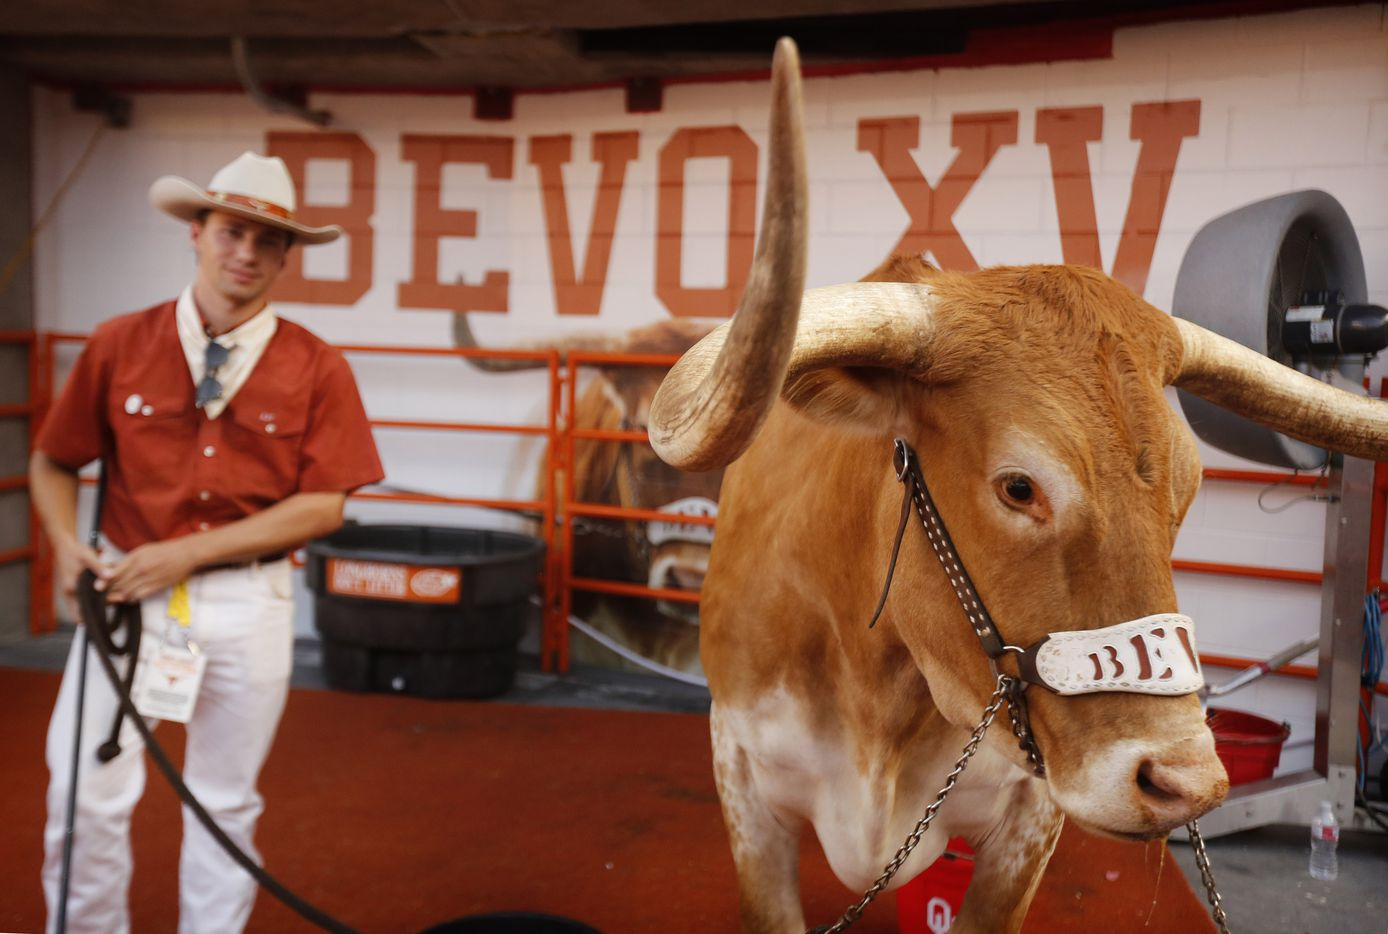 Bevo XV, the Texas Longhorns mascot, was at field level in his pen for the season-opener against the Louisiana-Lafayette Ragin Cajuns at DKR-Texas Memorial Stadium in Austin, Saturday, September 4, 2021. (Tom Fox/The Dallas Morning News)